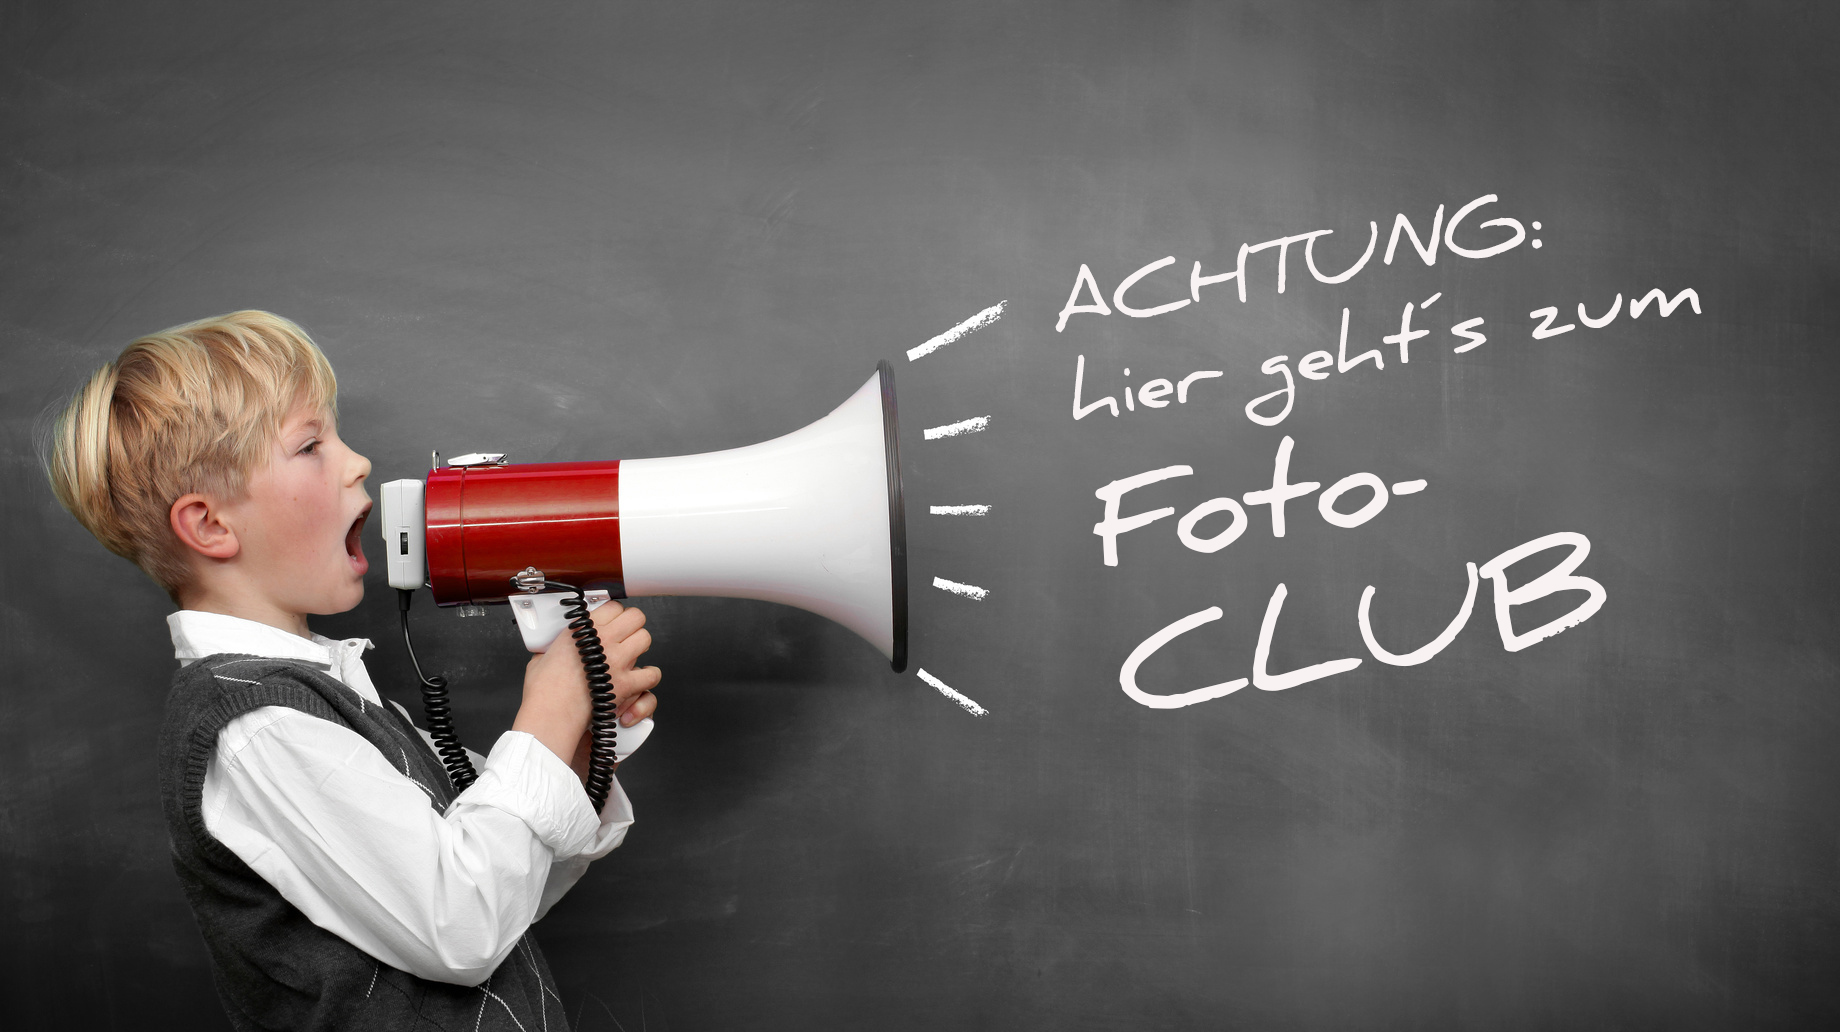 FotoCLUB © Coloures-Pic